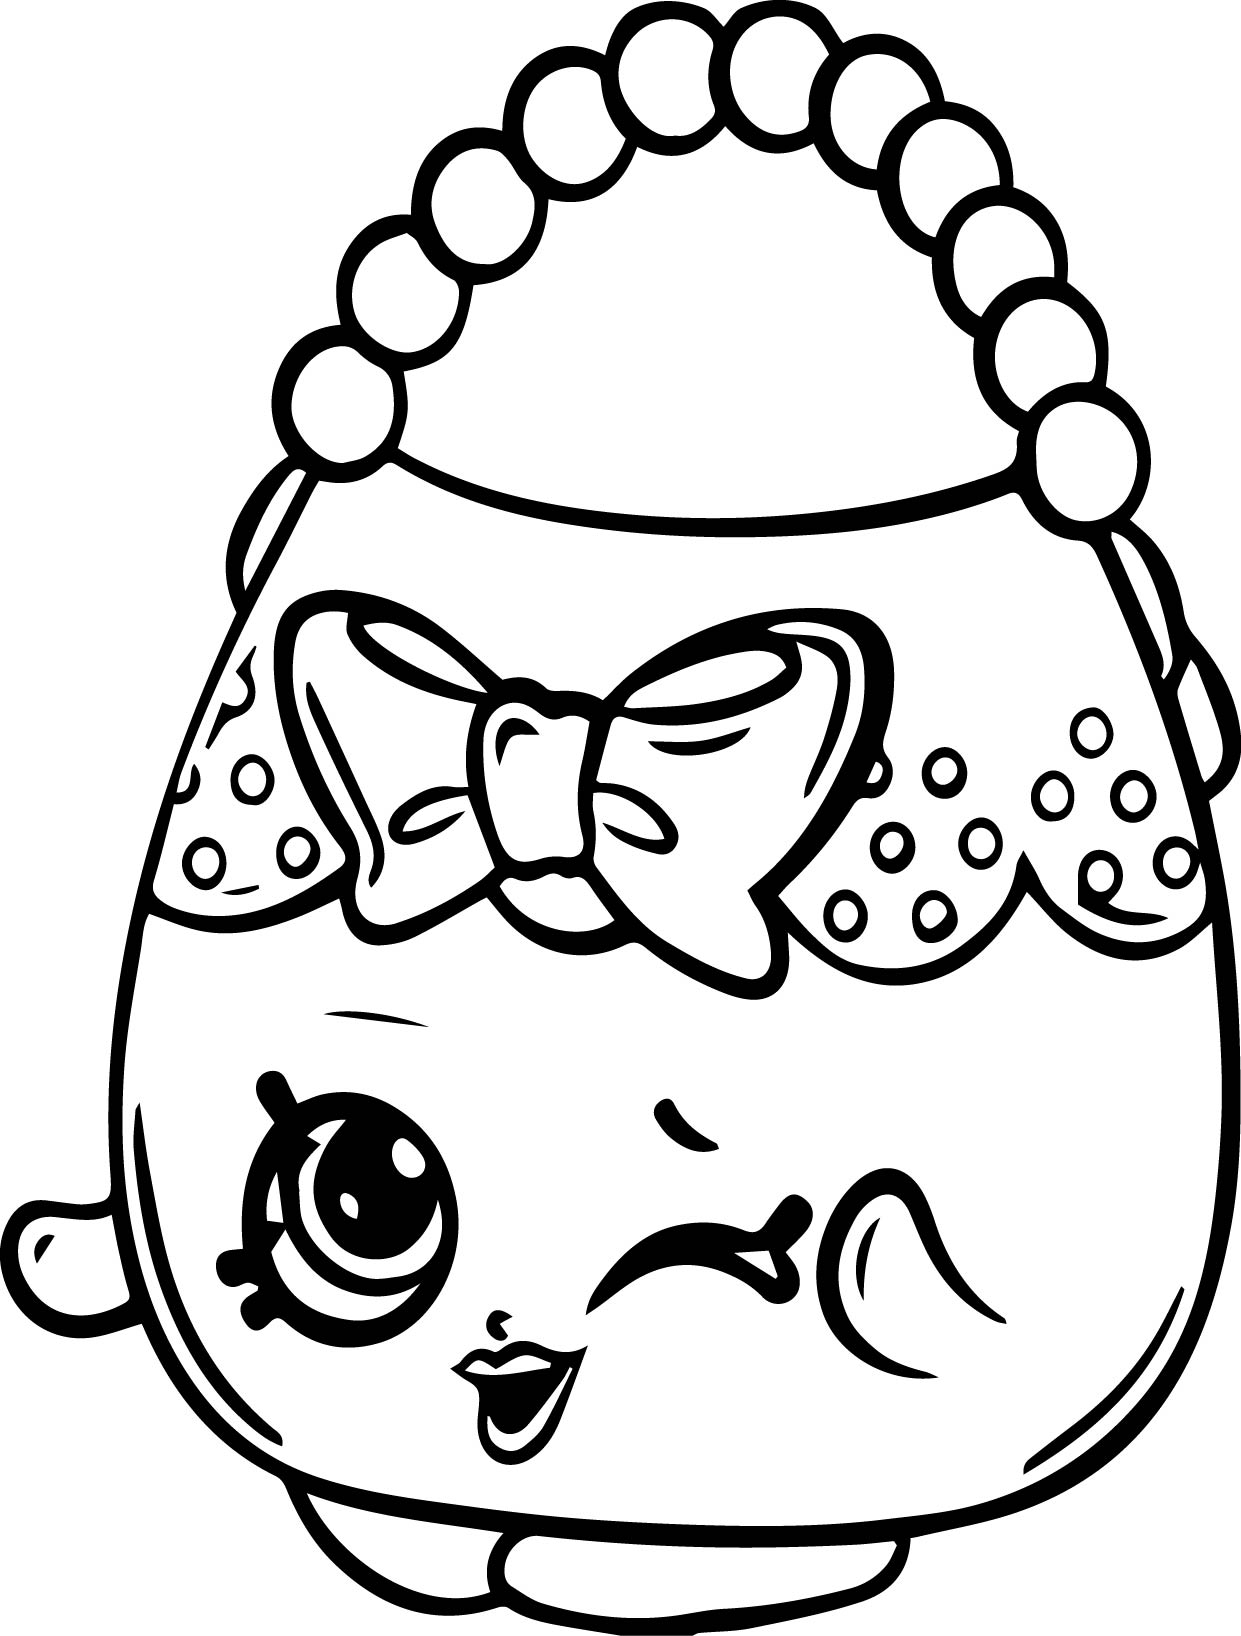 Coloring games of shopkins - Handbag Harriet Shopkins Coloring Page